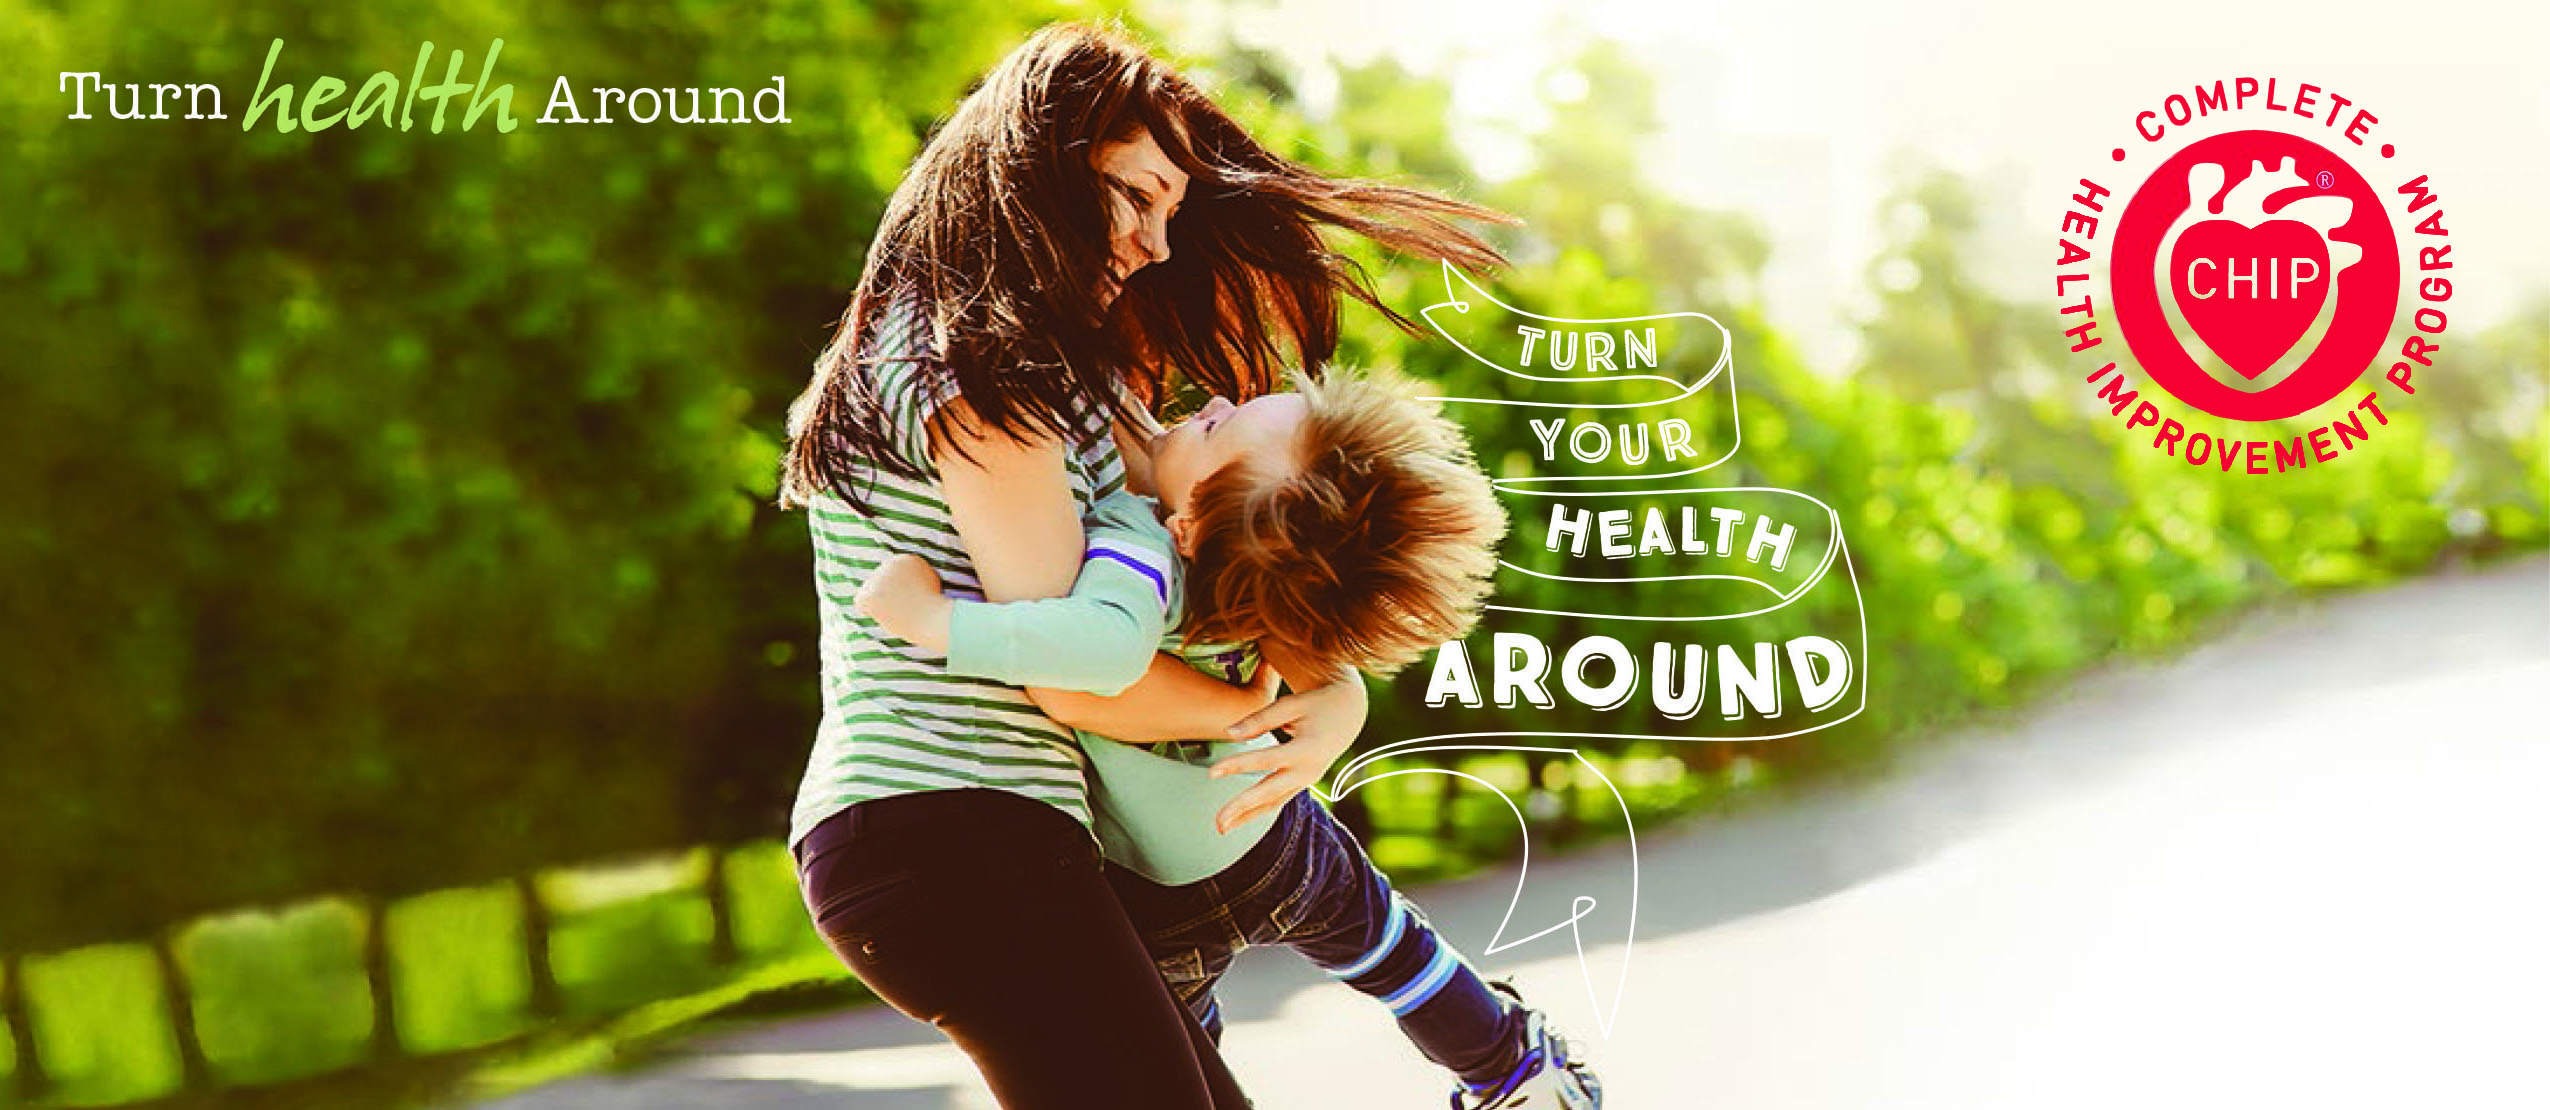 Take control of your health with CHIP